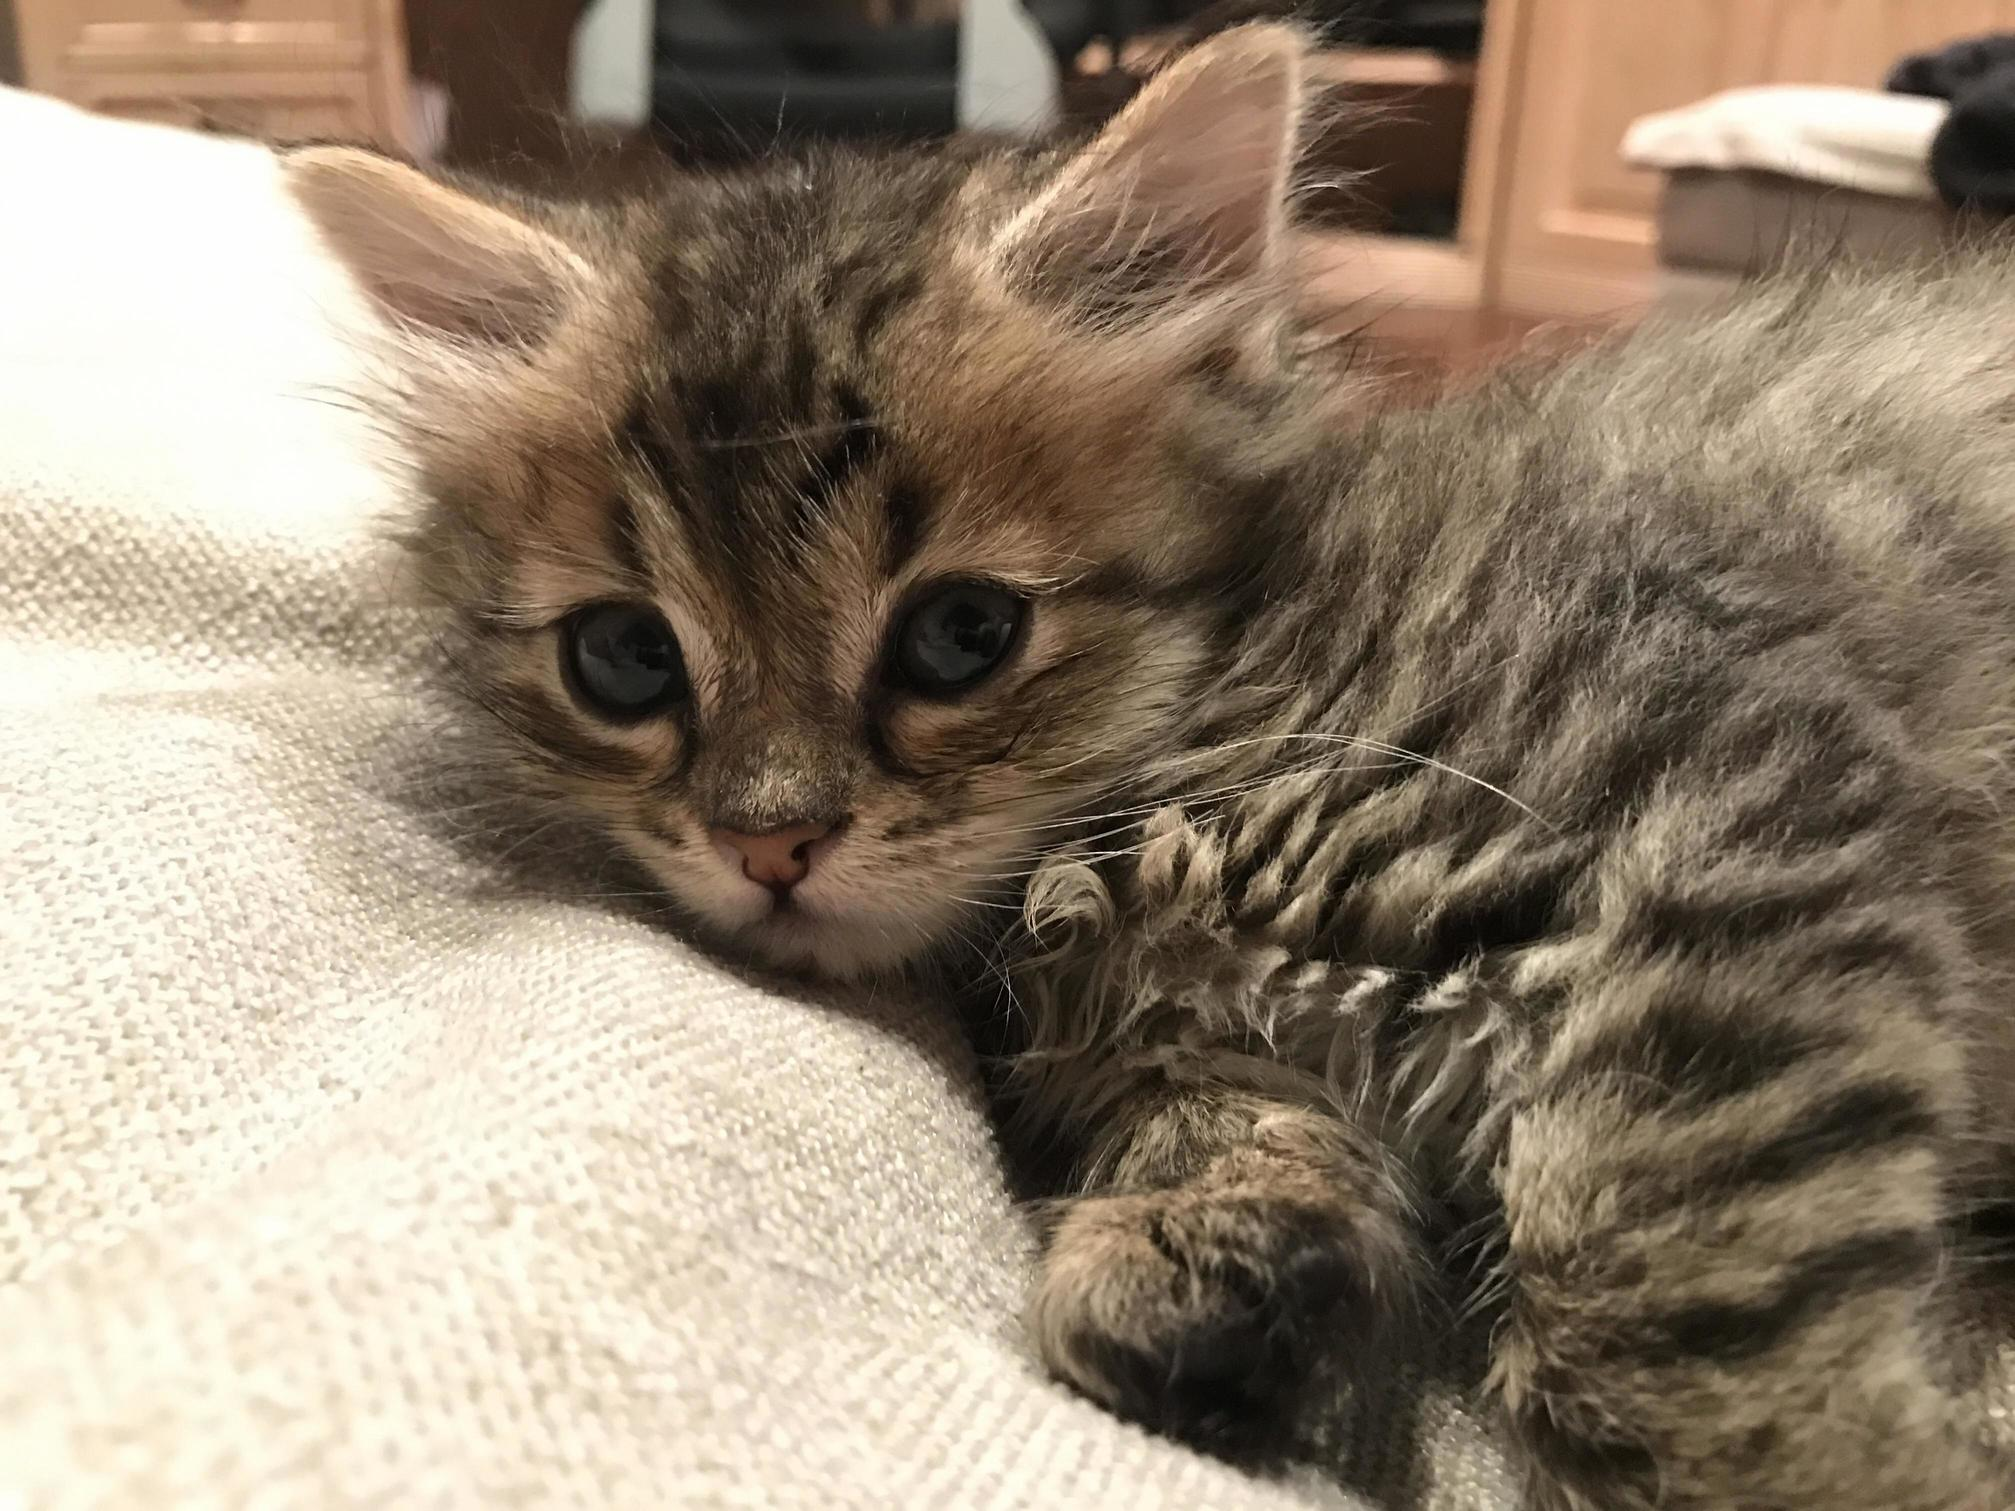 Hello everyone my family just got this cat and were trying to find a good name for her what name would you guys suggest